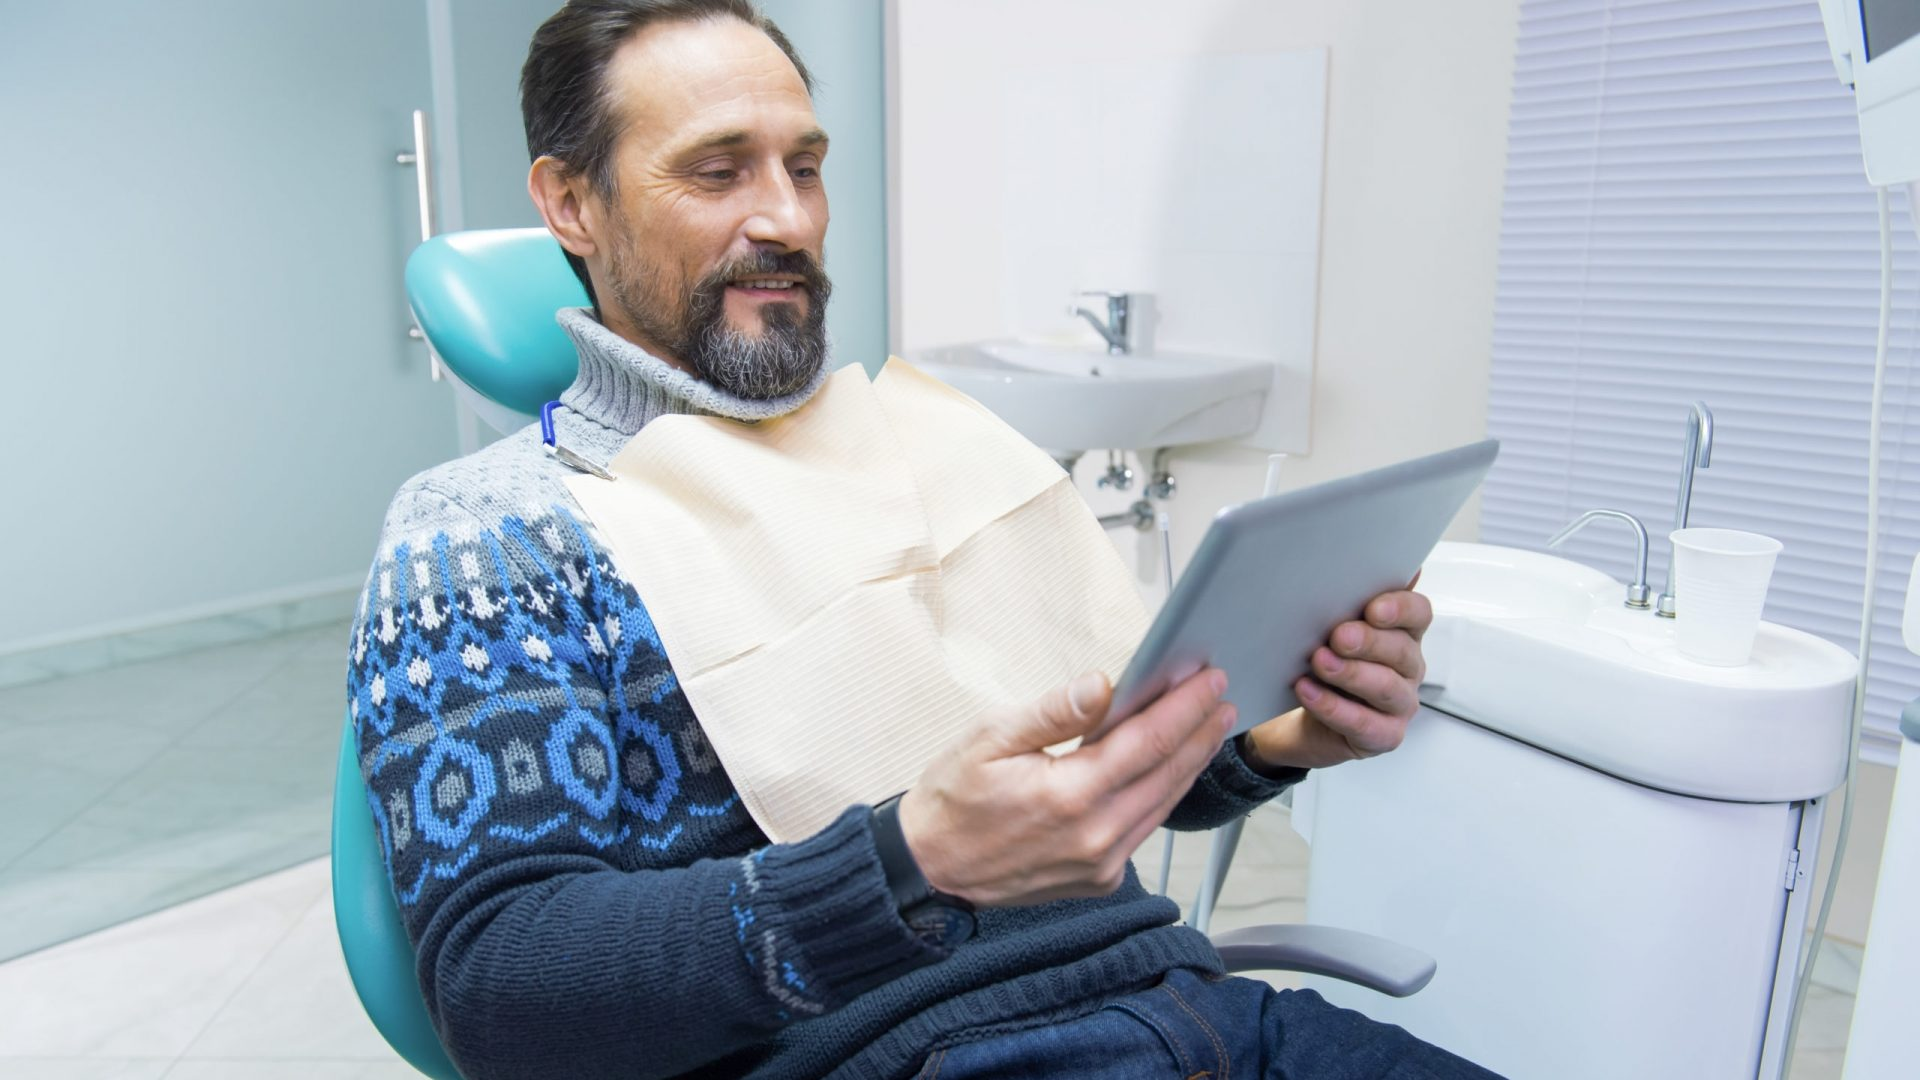 Man sitting in dentist chair. Mature guy looking at tablet.